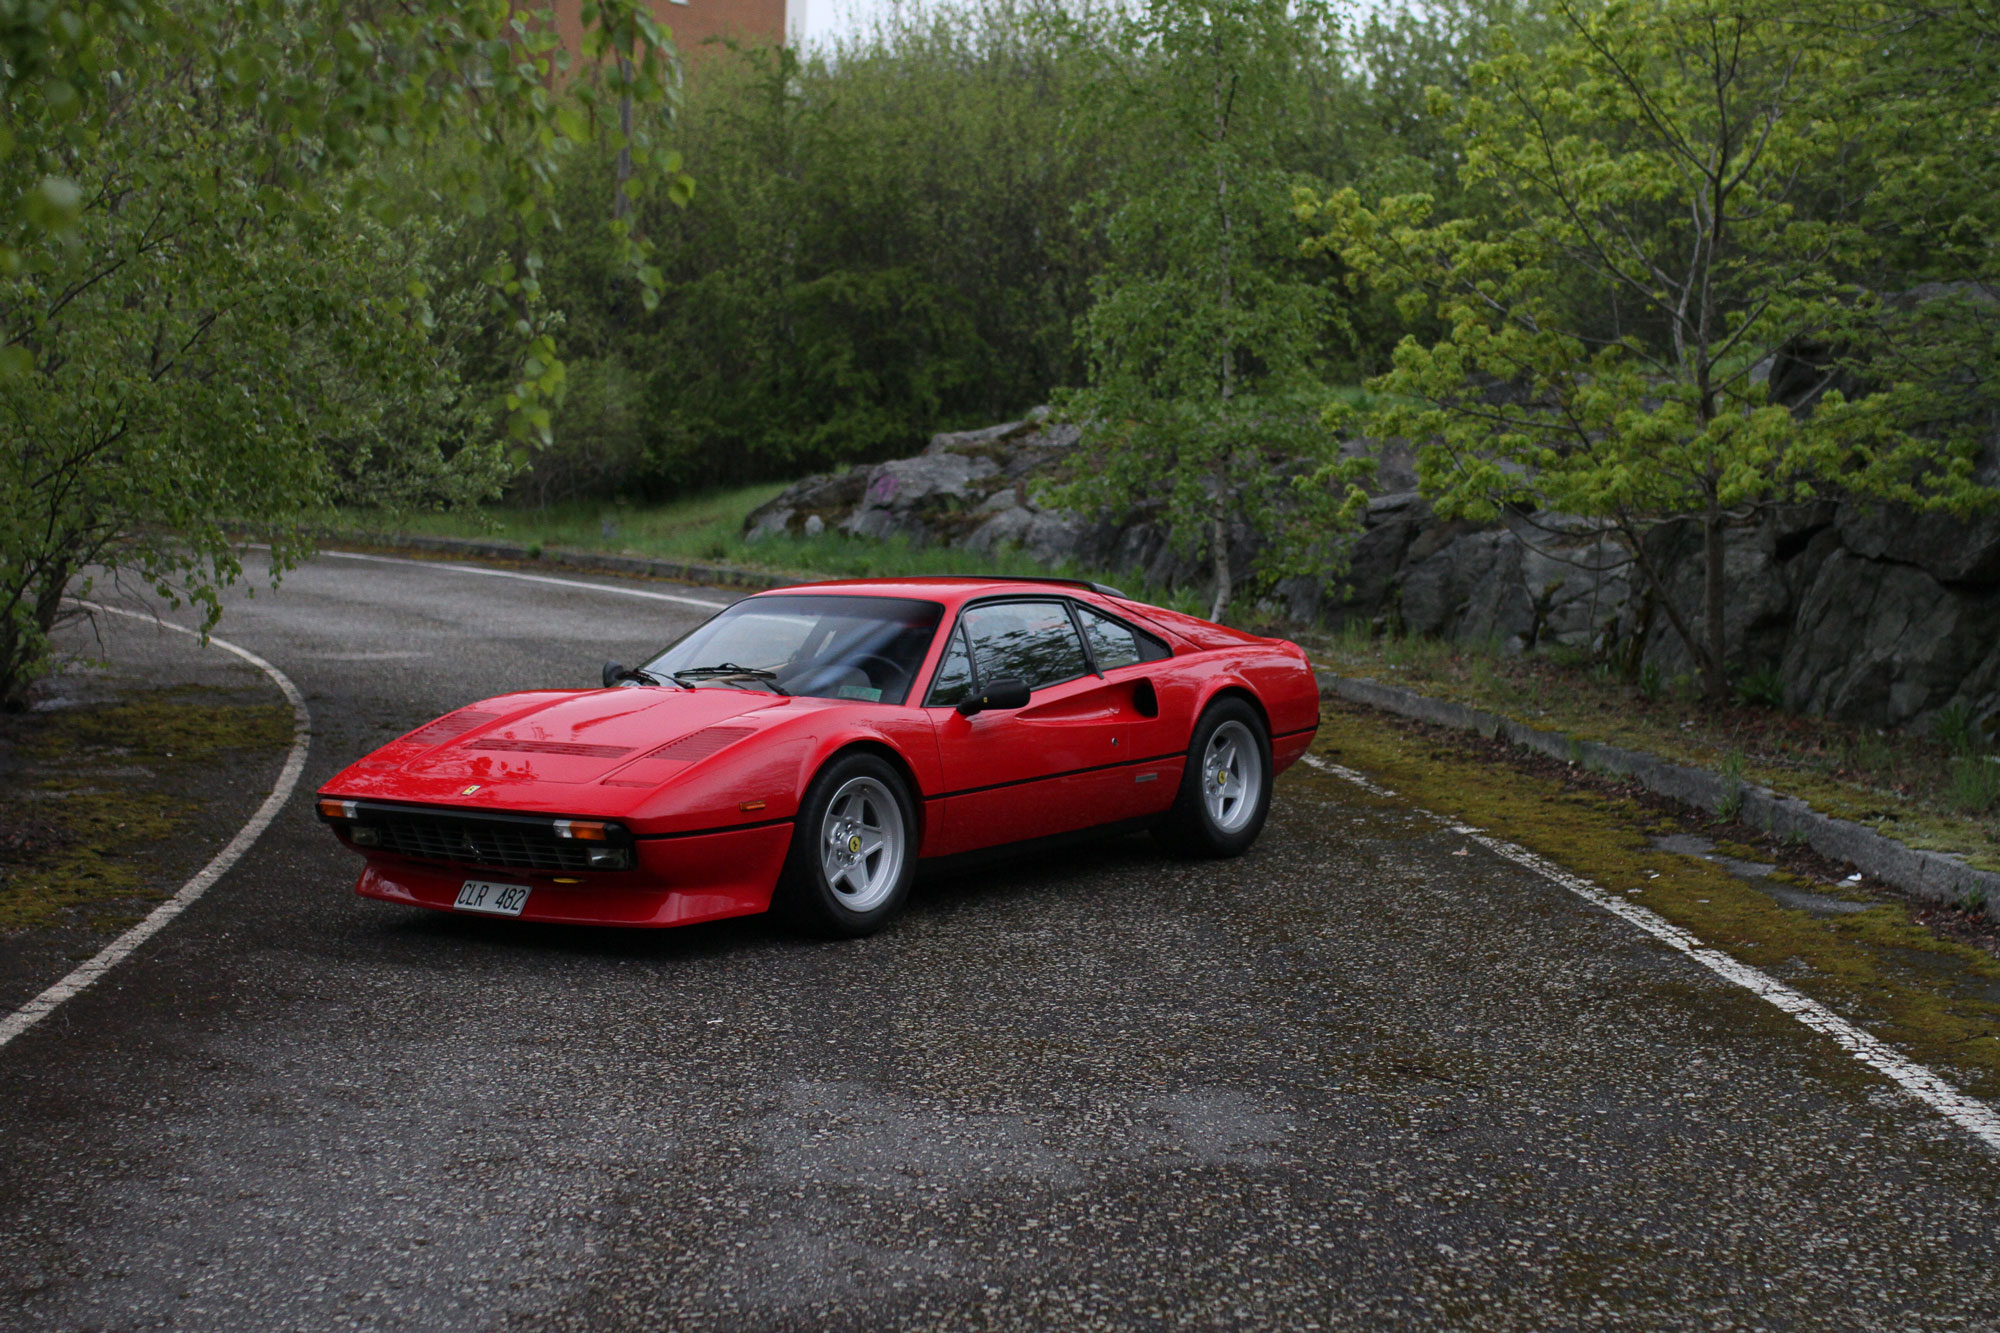 Ferrari 308 GTB QV 1984 on the abandon Highway exit